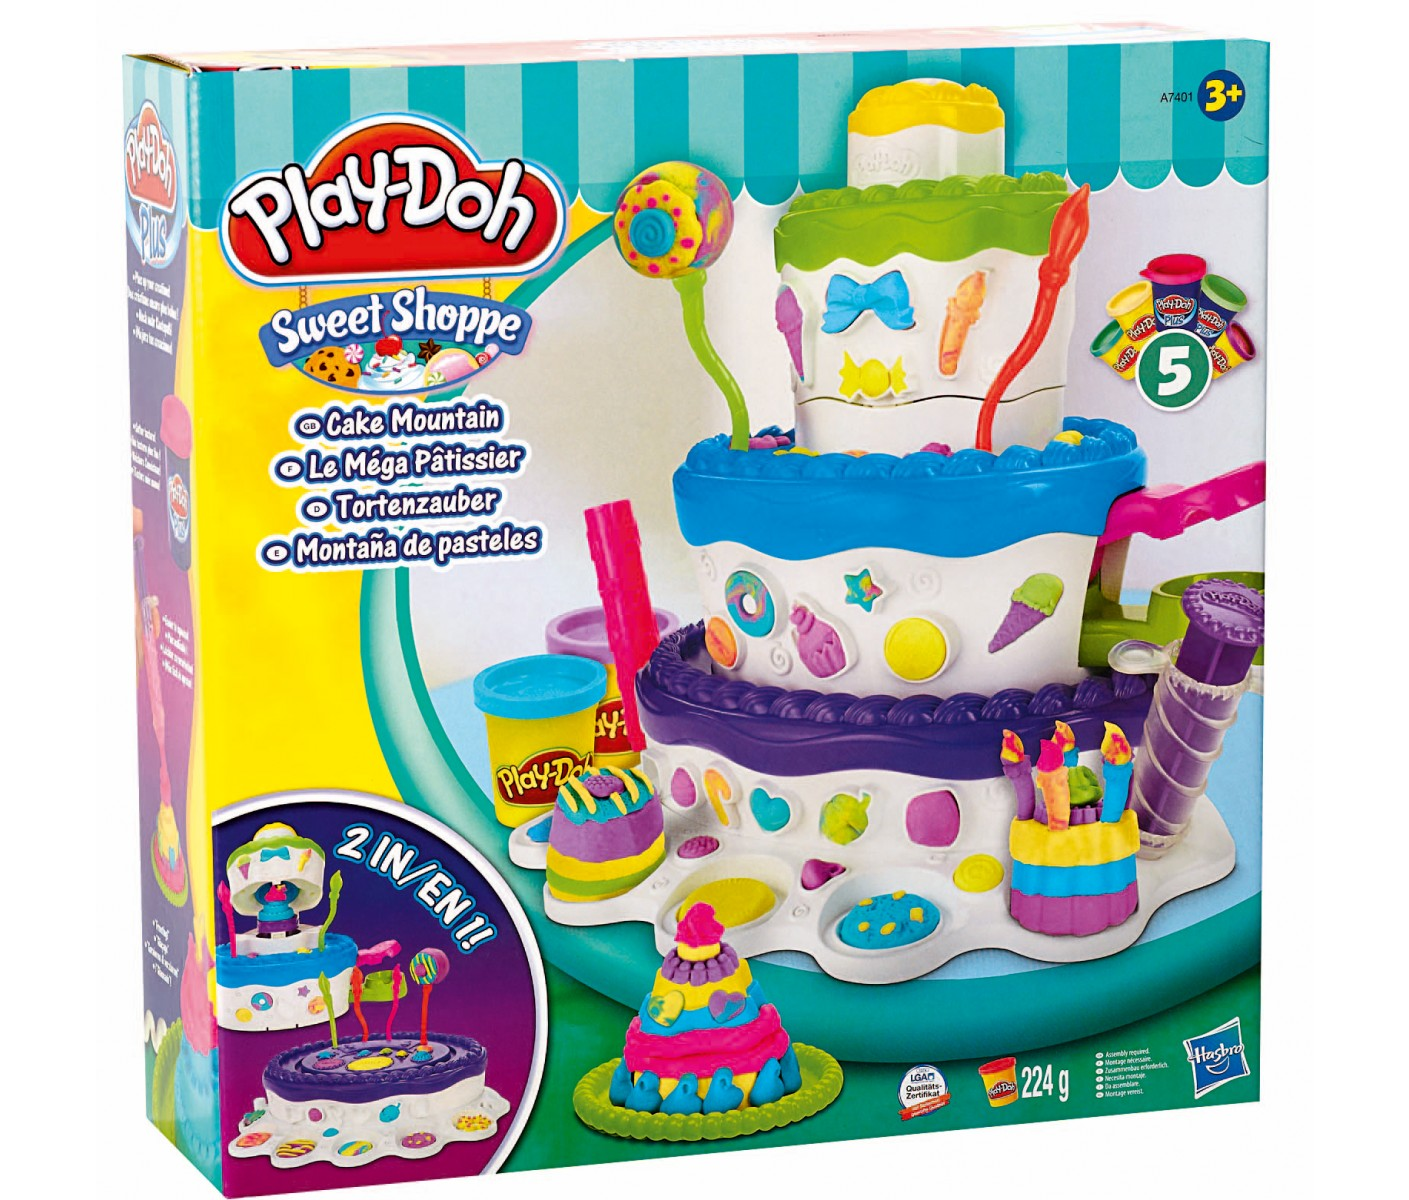 p te modeler mega patissier play doh 52431. Black Bedroom Furniture Sets. Home Design Ideas